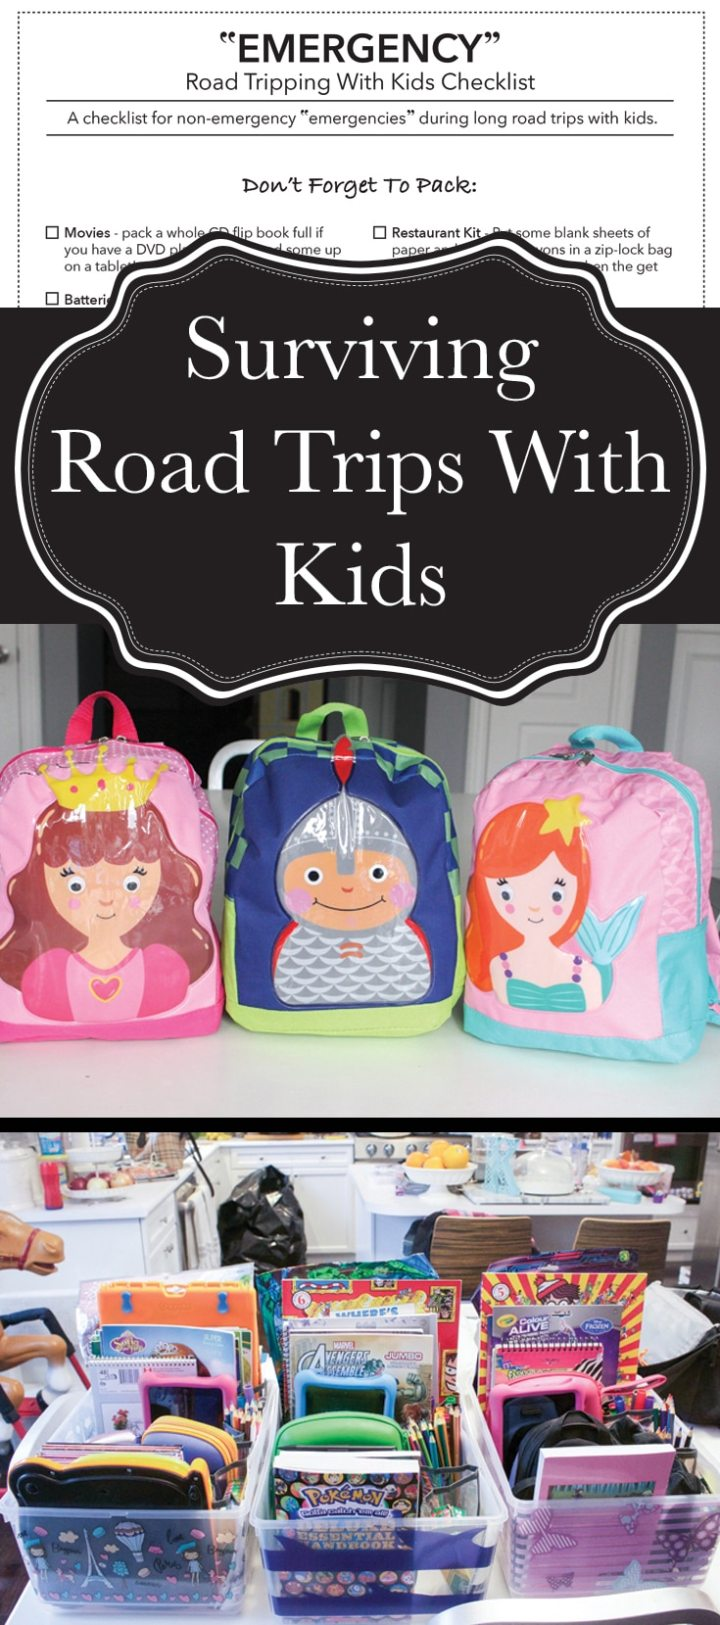 """Tips and tricks to survive long road trips with kids. I've got how-to's for busy bins and surprise bags, the perfect timing for traveling with kids, and an """"emergencies"""" checklist so you don't forget anything!"""